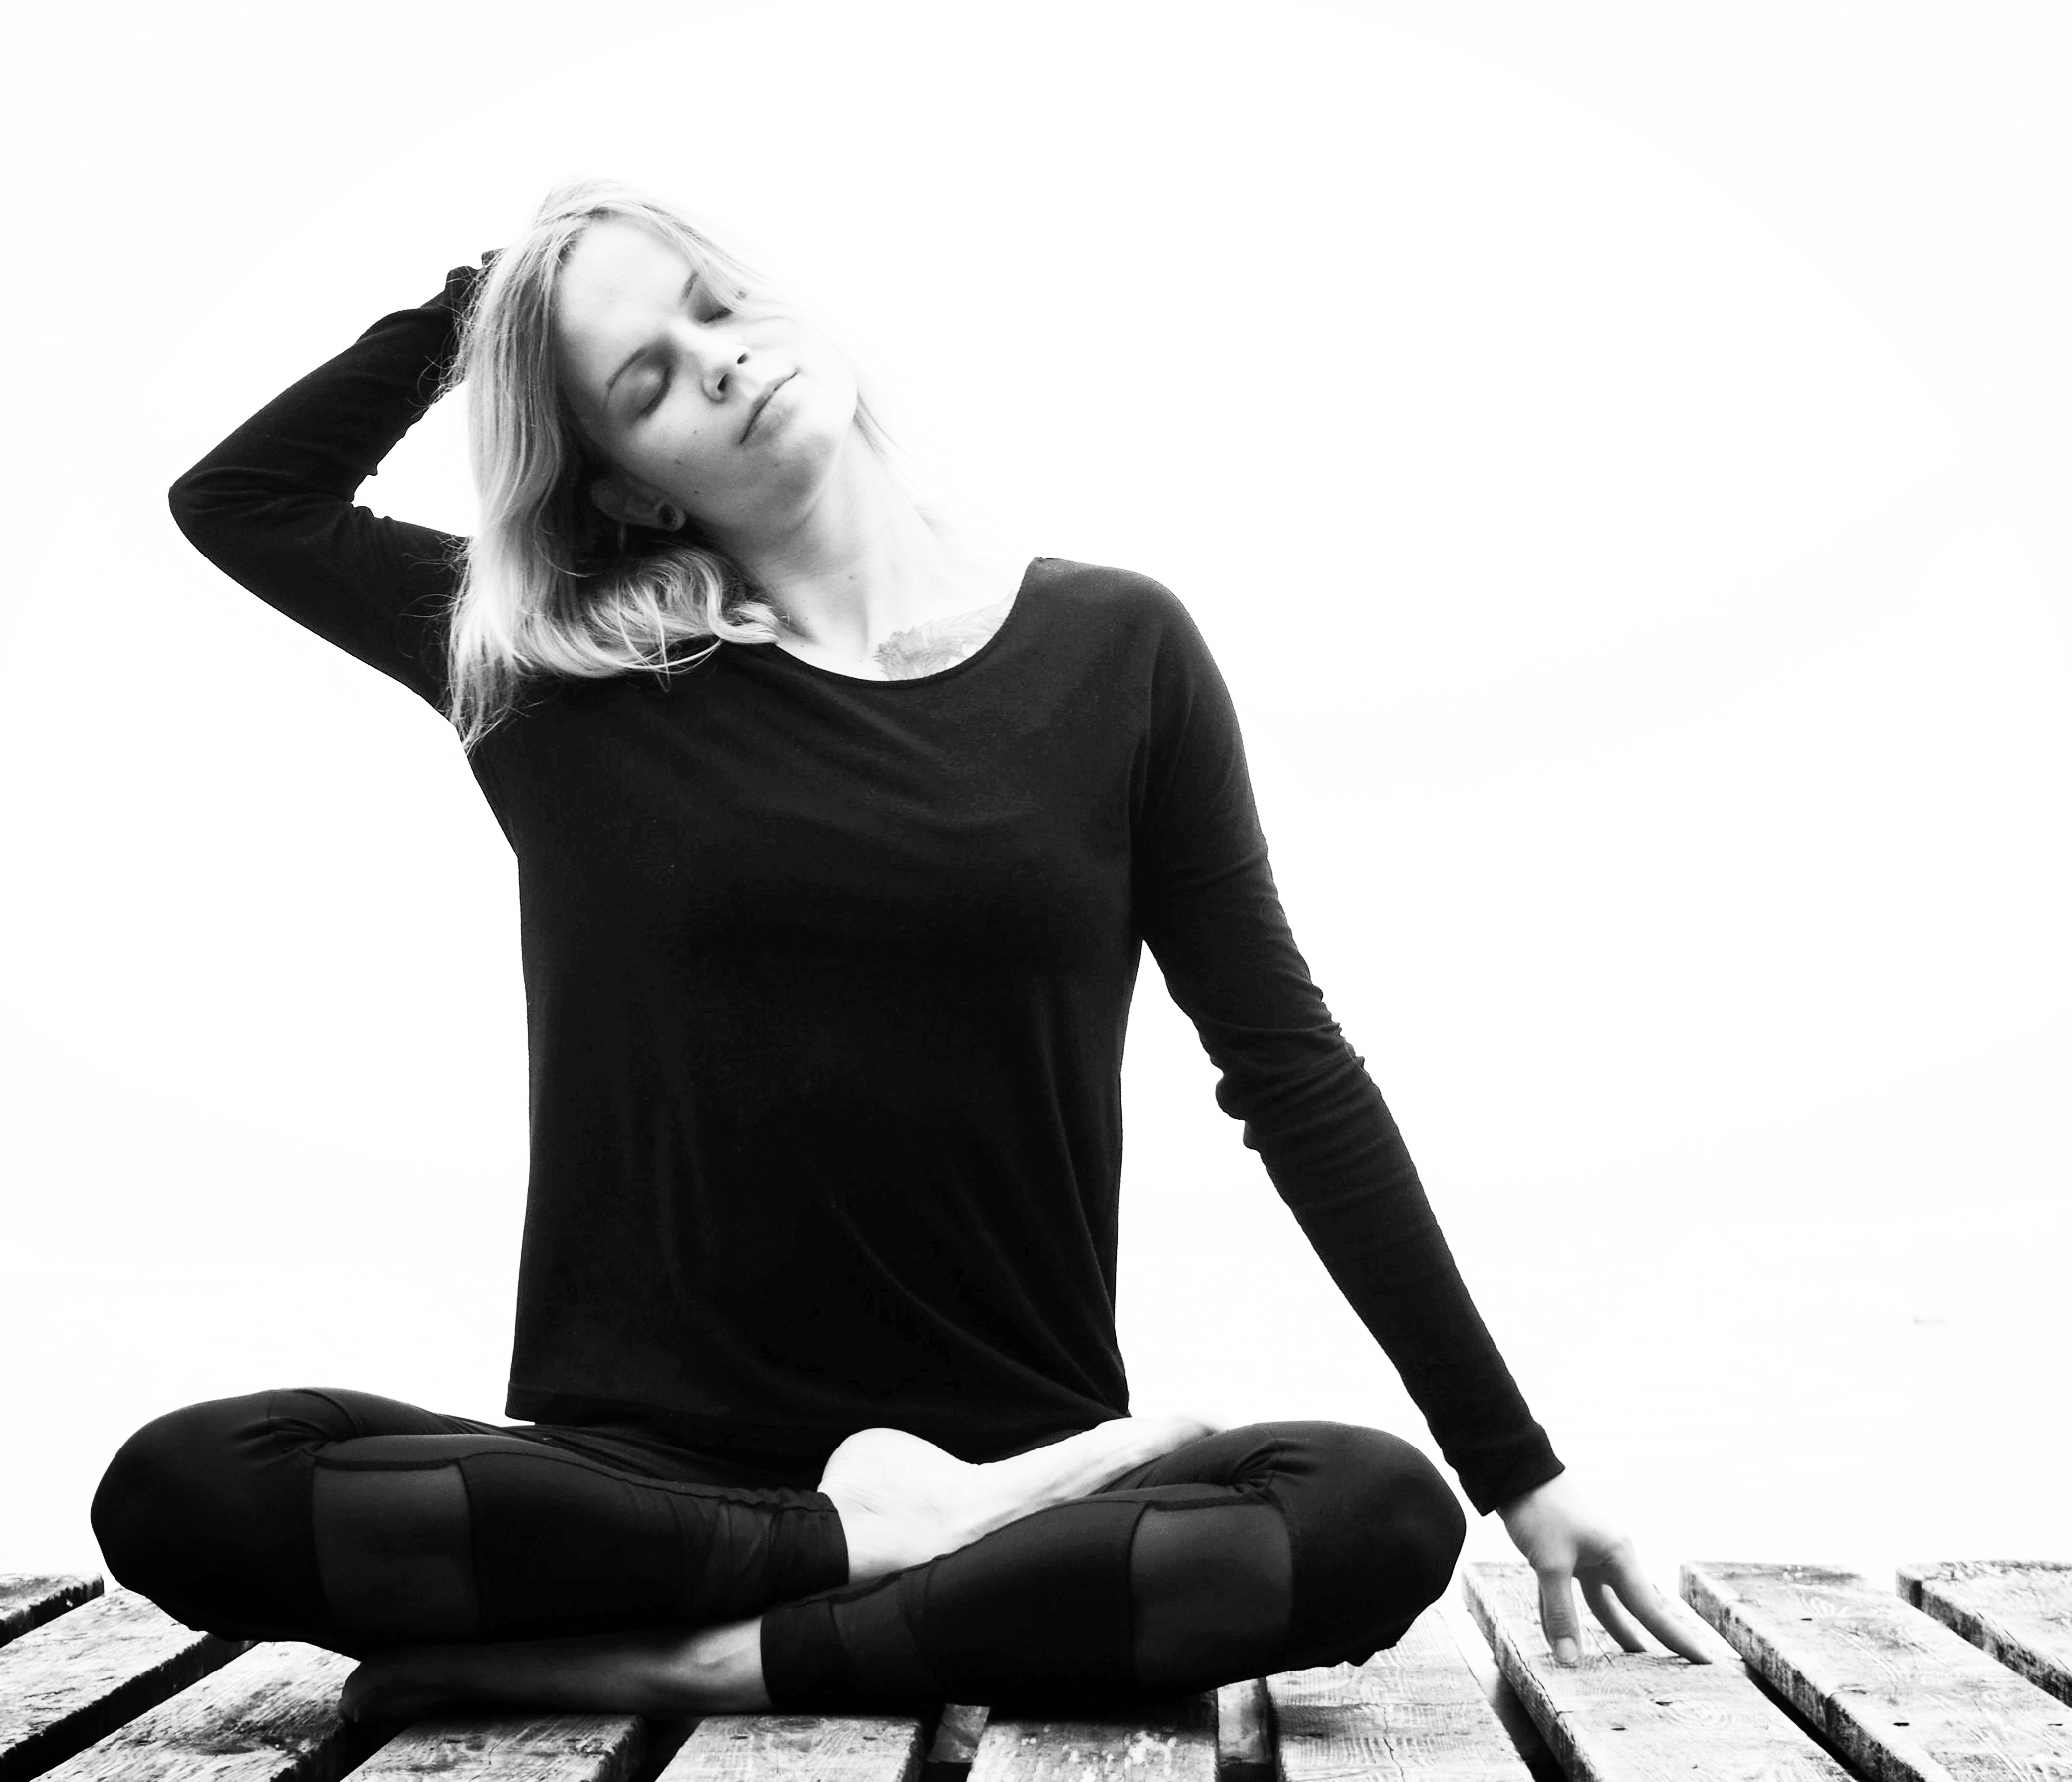 YOGA CLASSES - Weekly yoga drop-in classes, workshops, private and corporate classes